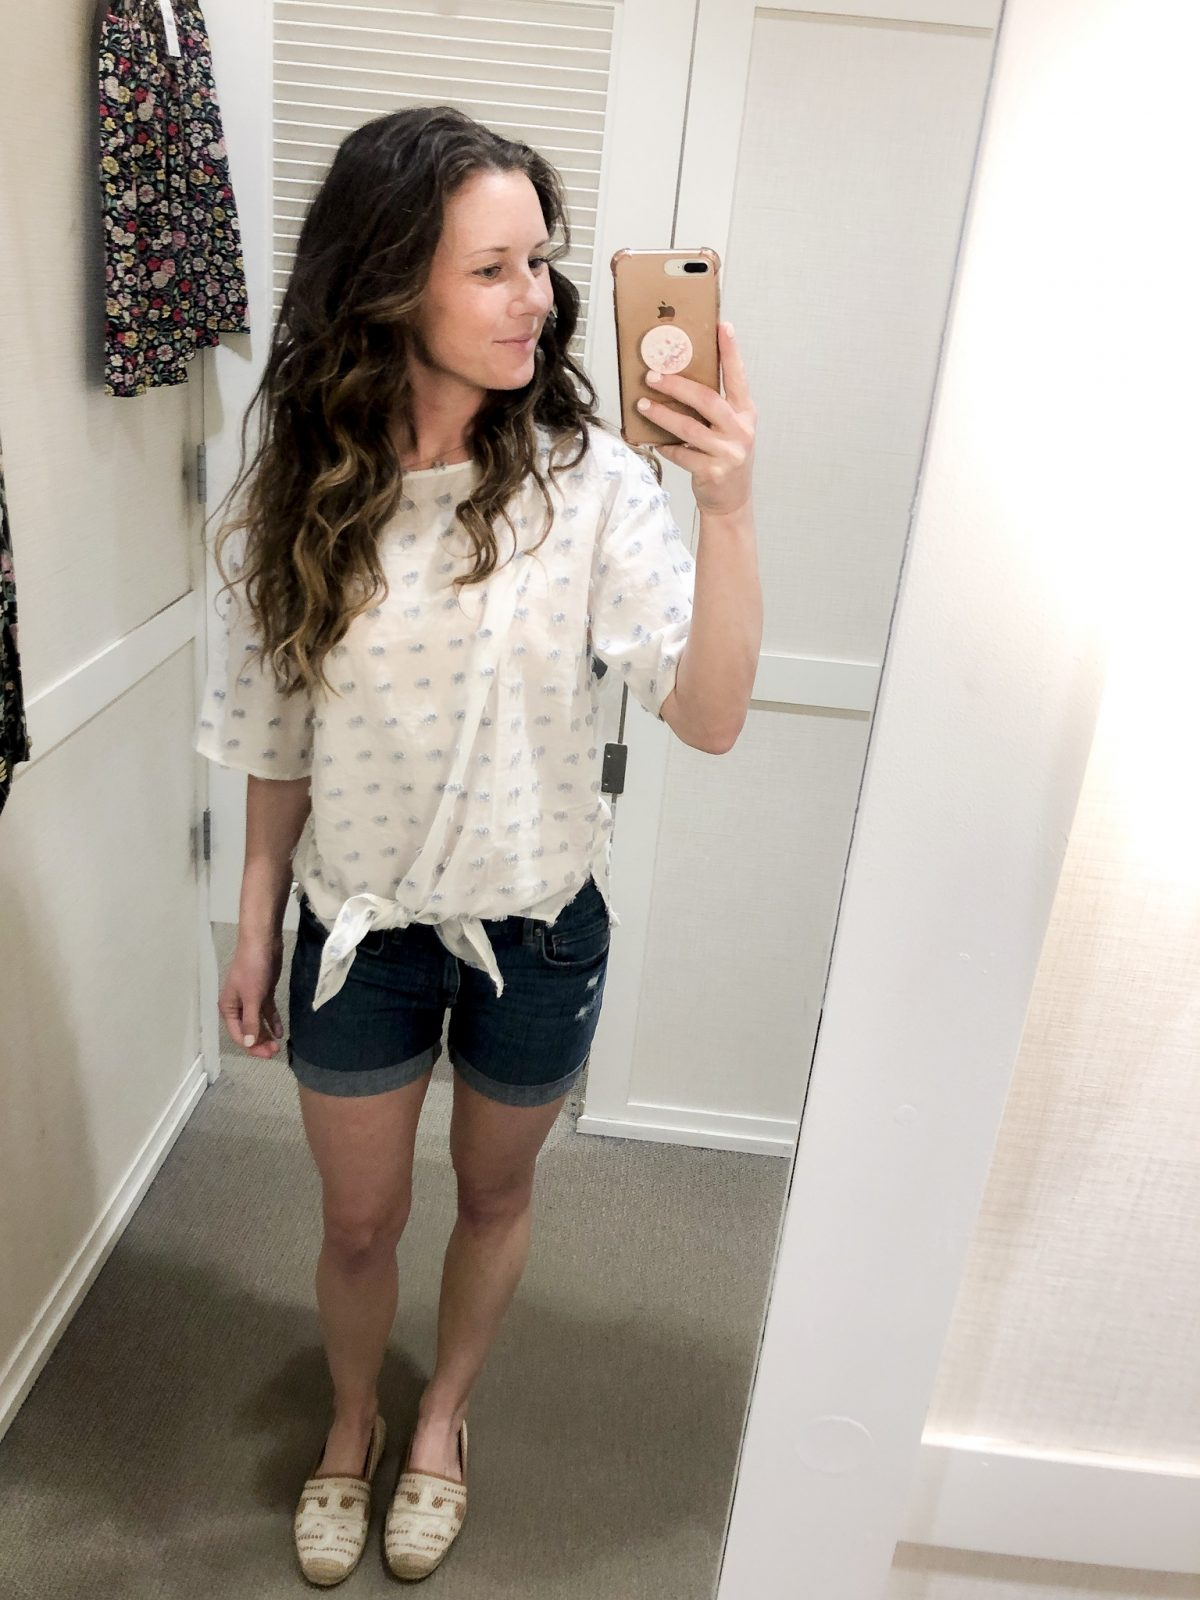 White and Blue Top tied at From with Denim Shorts and Tory Burch Espadrilles on Woman at LOFT Confessions of a Northern Belle